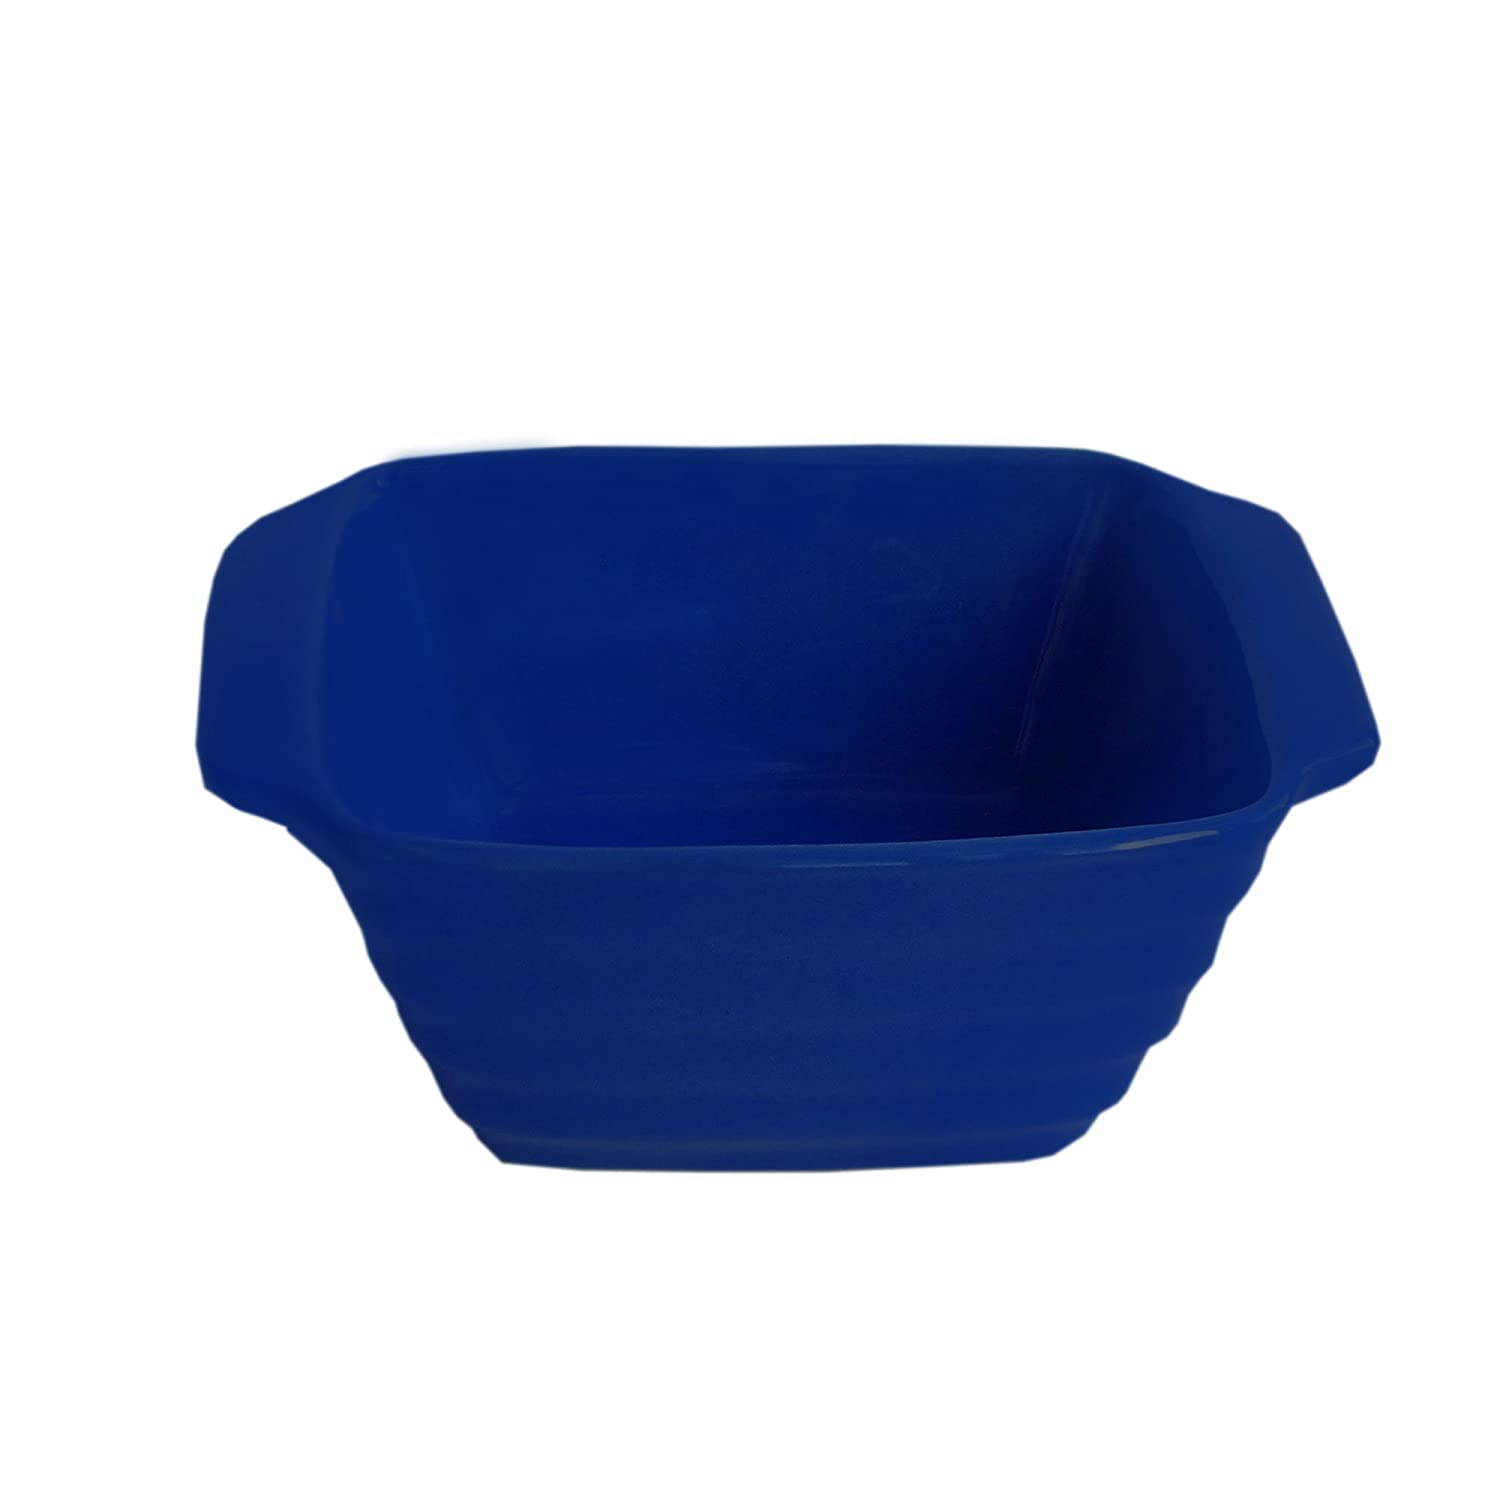 American Atelier Bistro Square Bake and Serve Bowl, Cobalt 6254-BKS-S